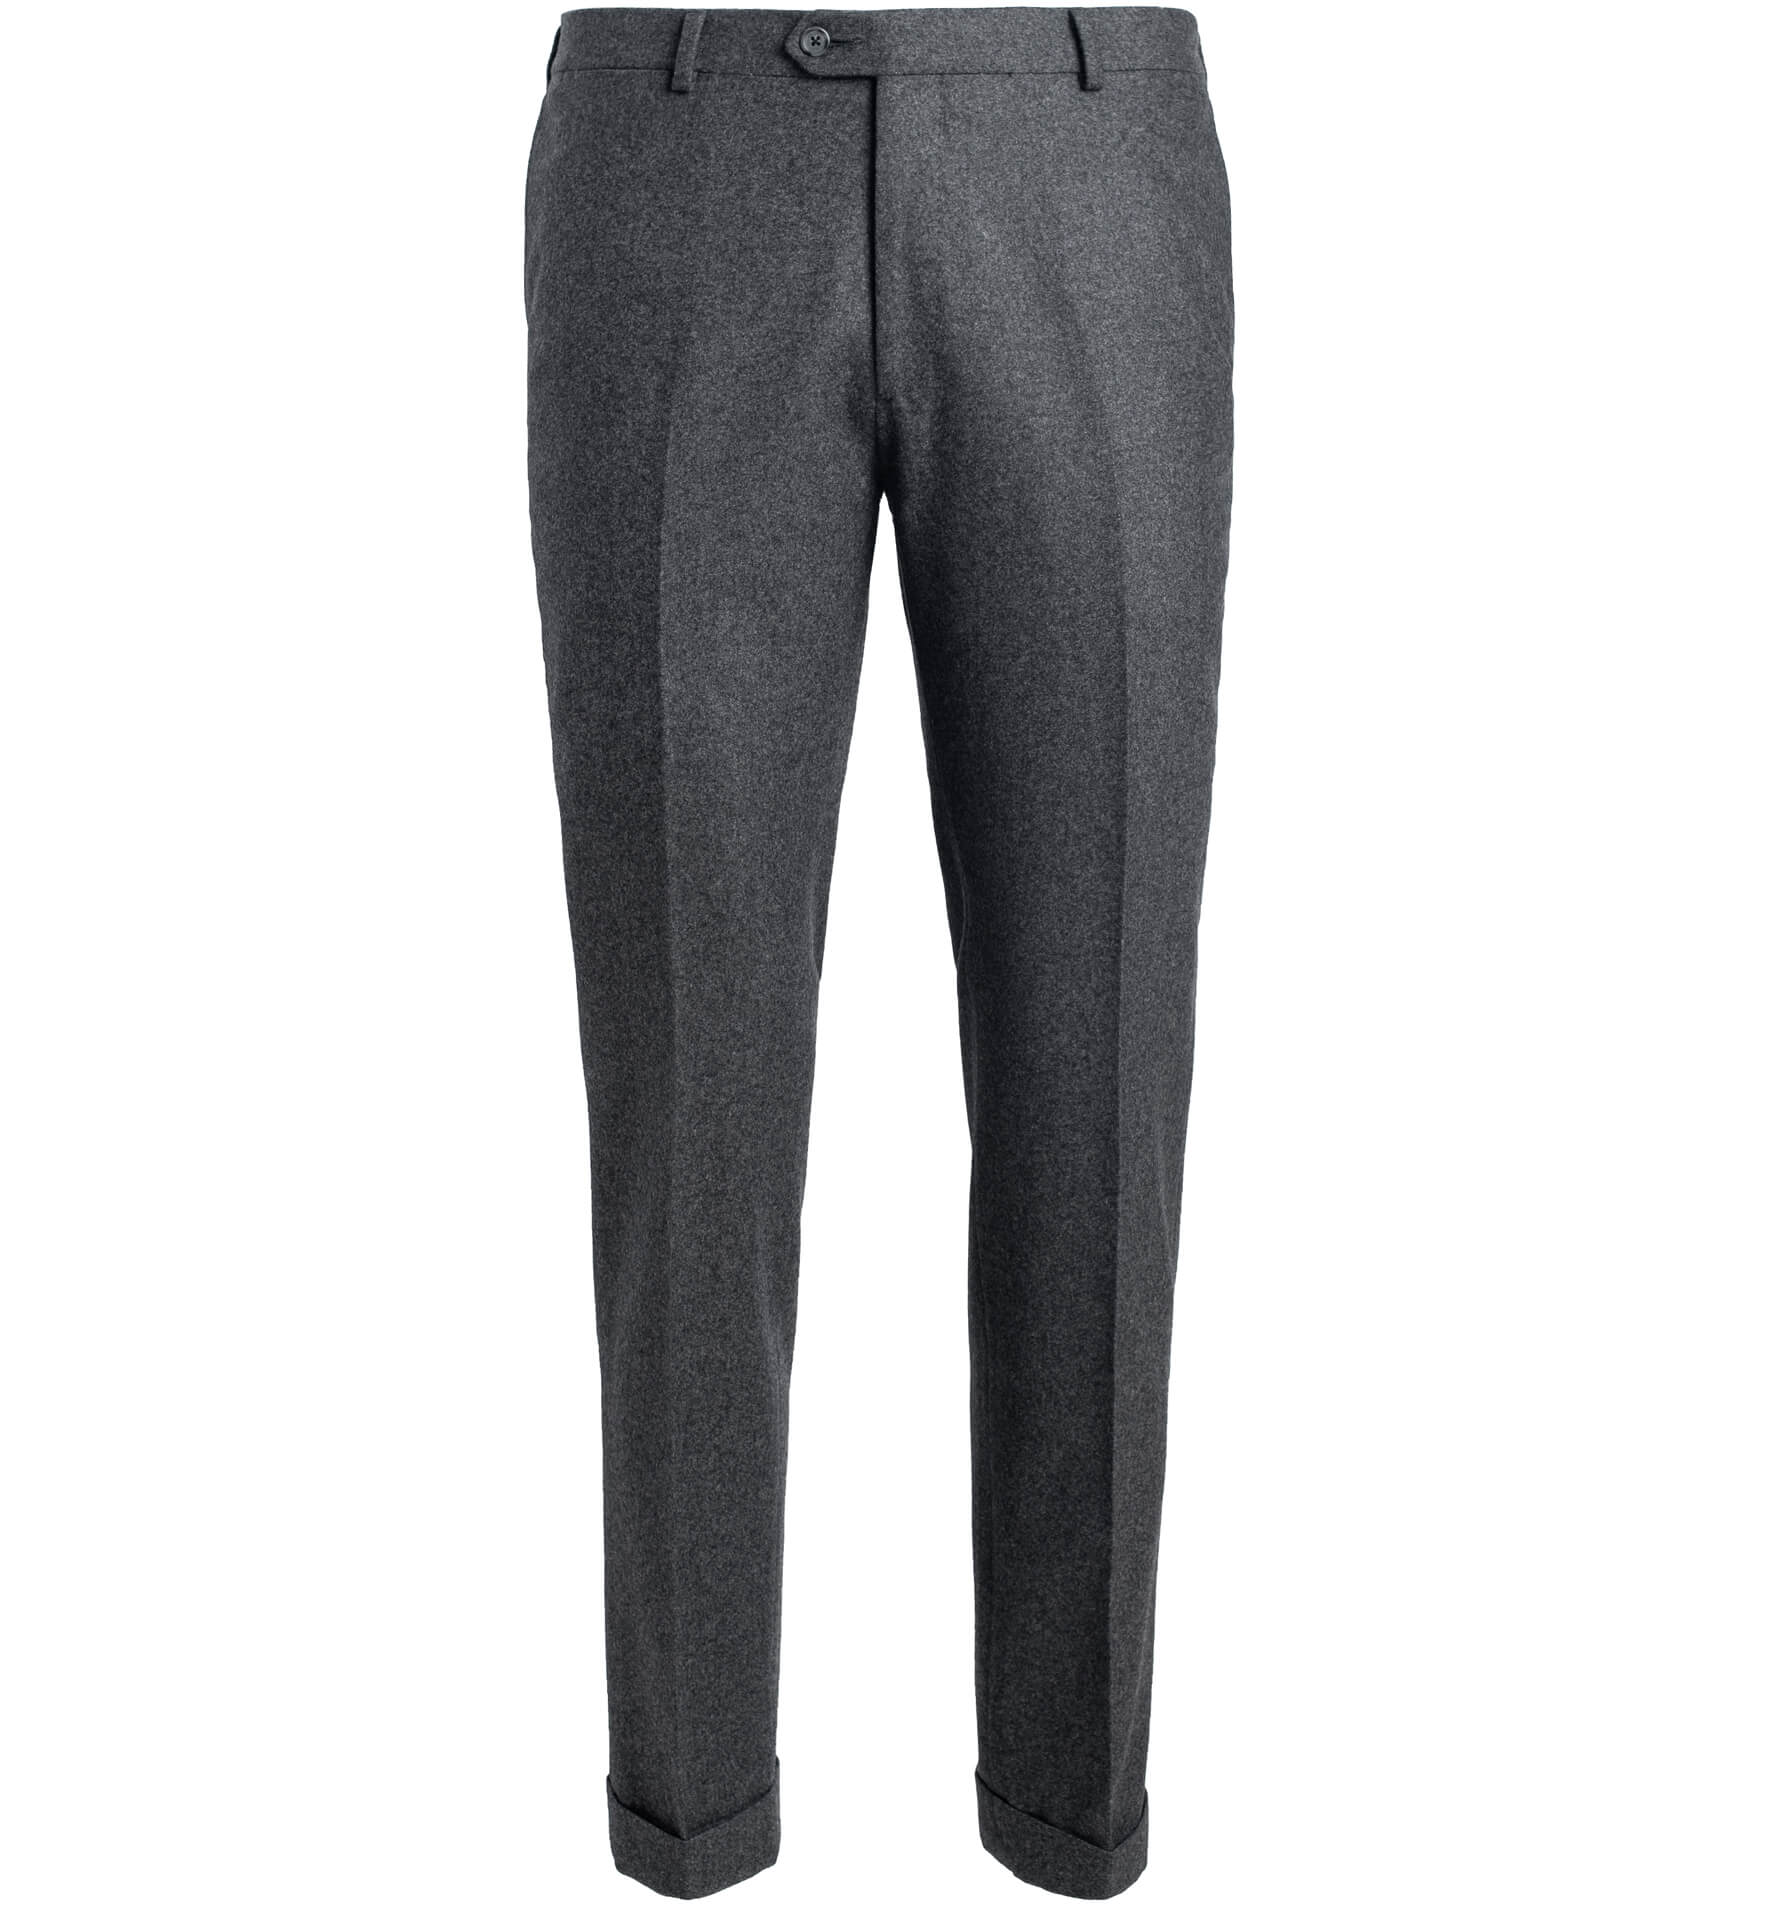 Zoom Image of Allen Grey Wool Flannel Cuffed Trouser